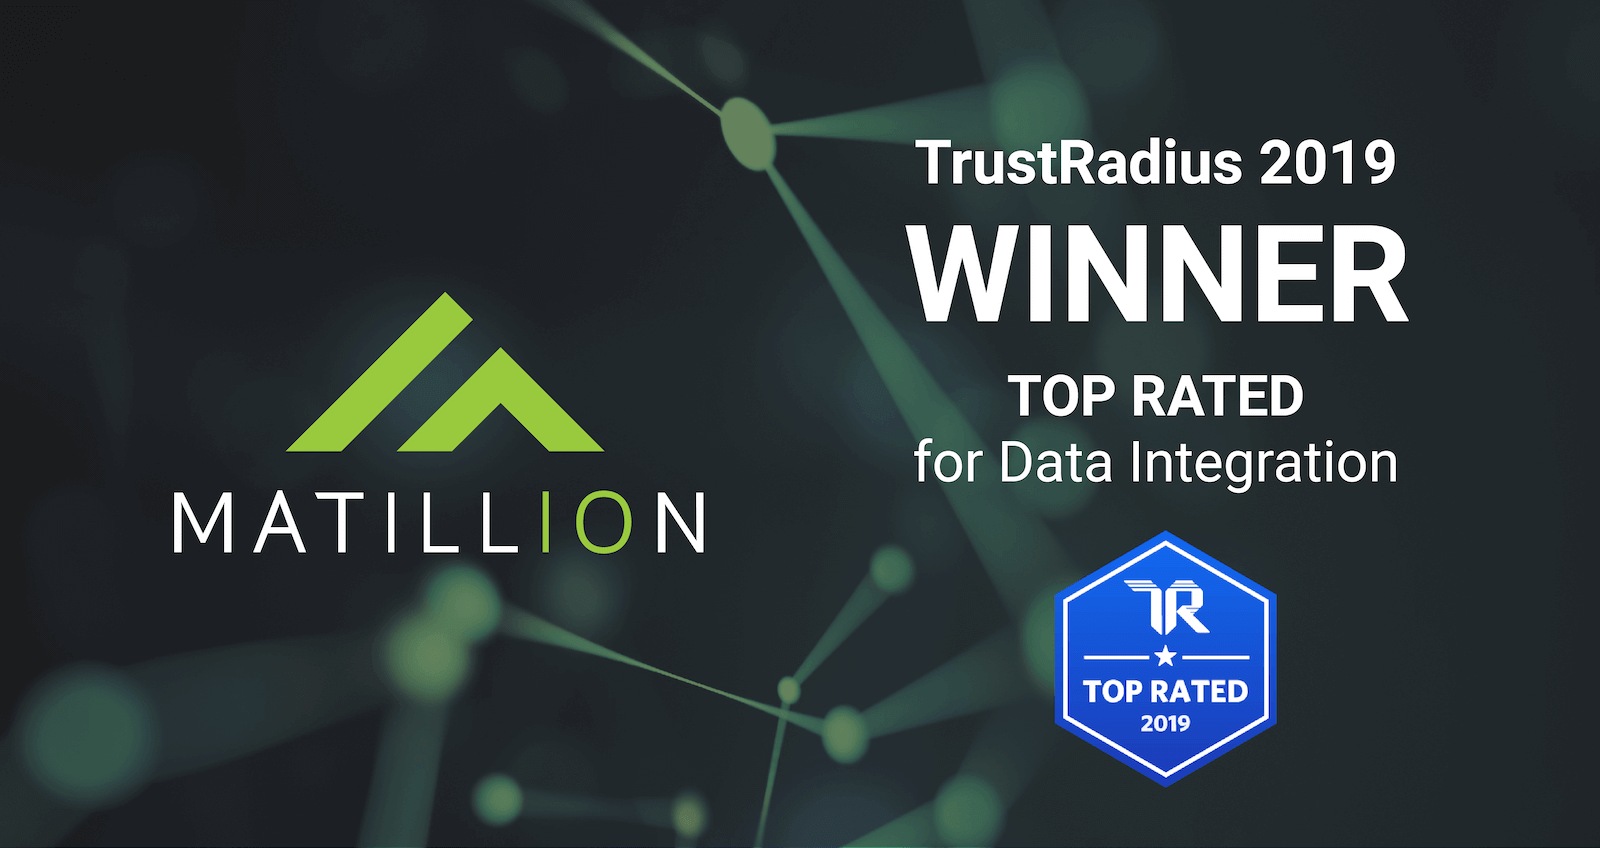 This is a screen announcing that Matillion is Winner of a 2019 TrustRadius Top Rated award